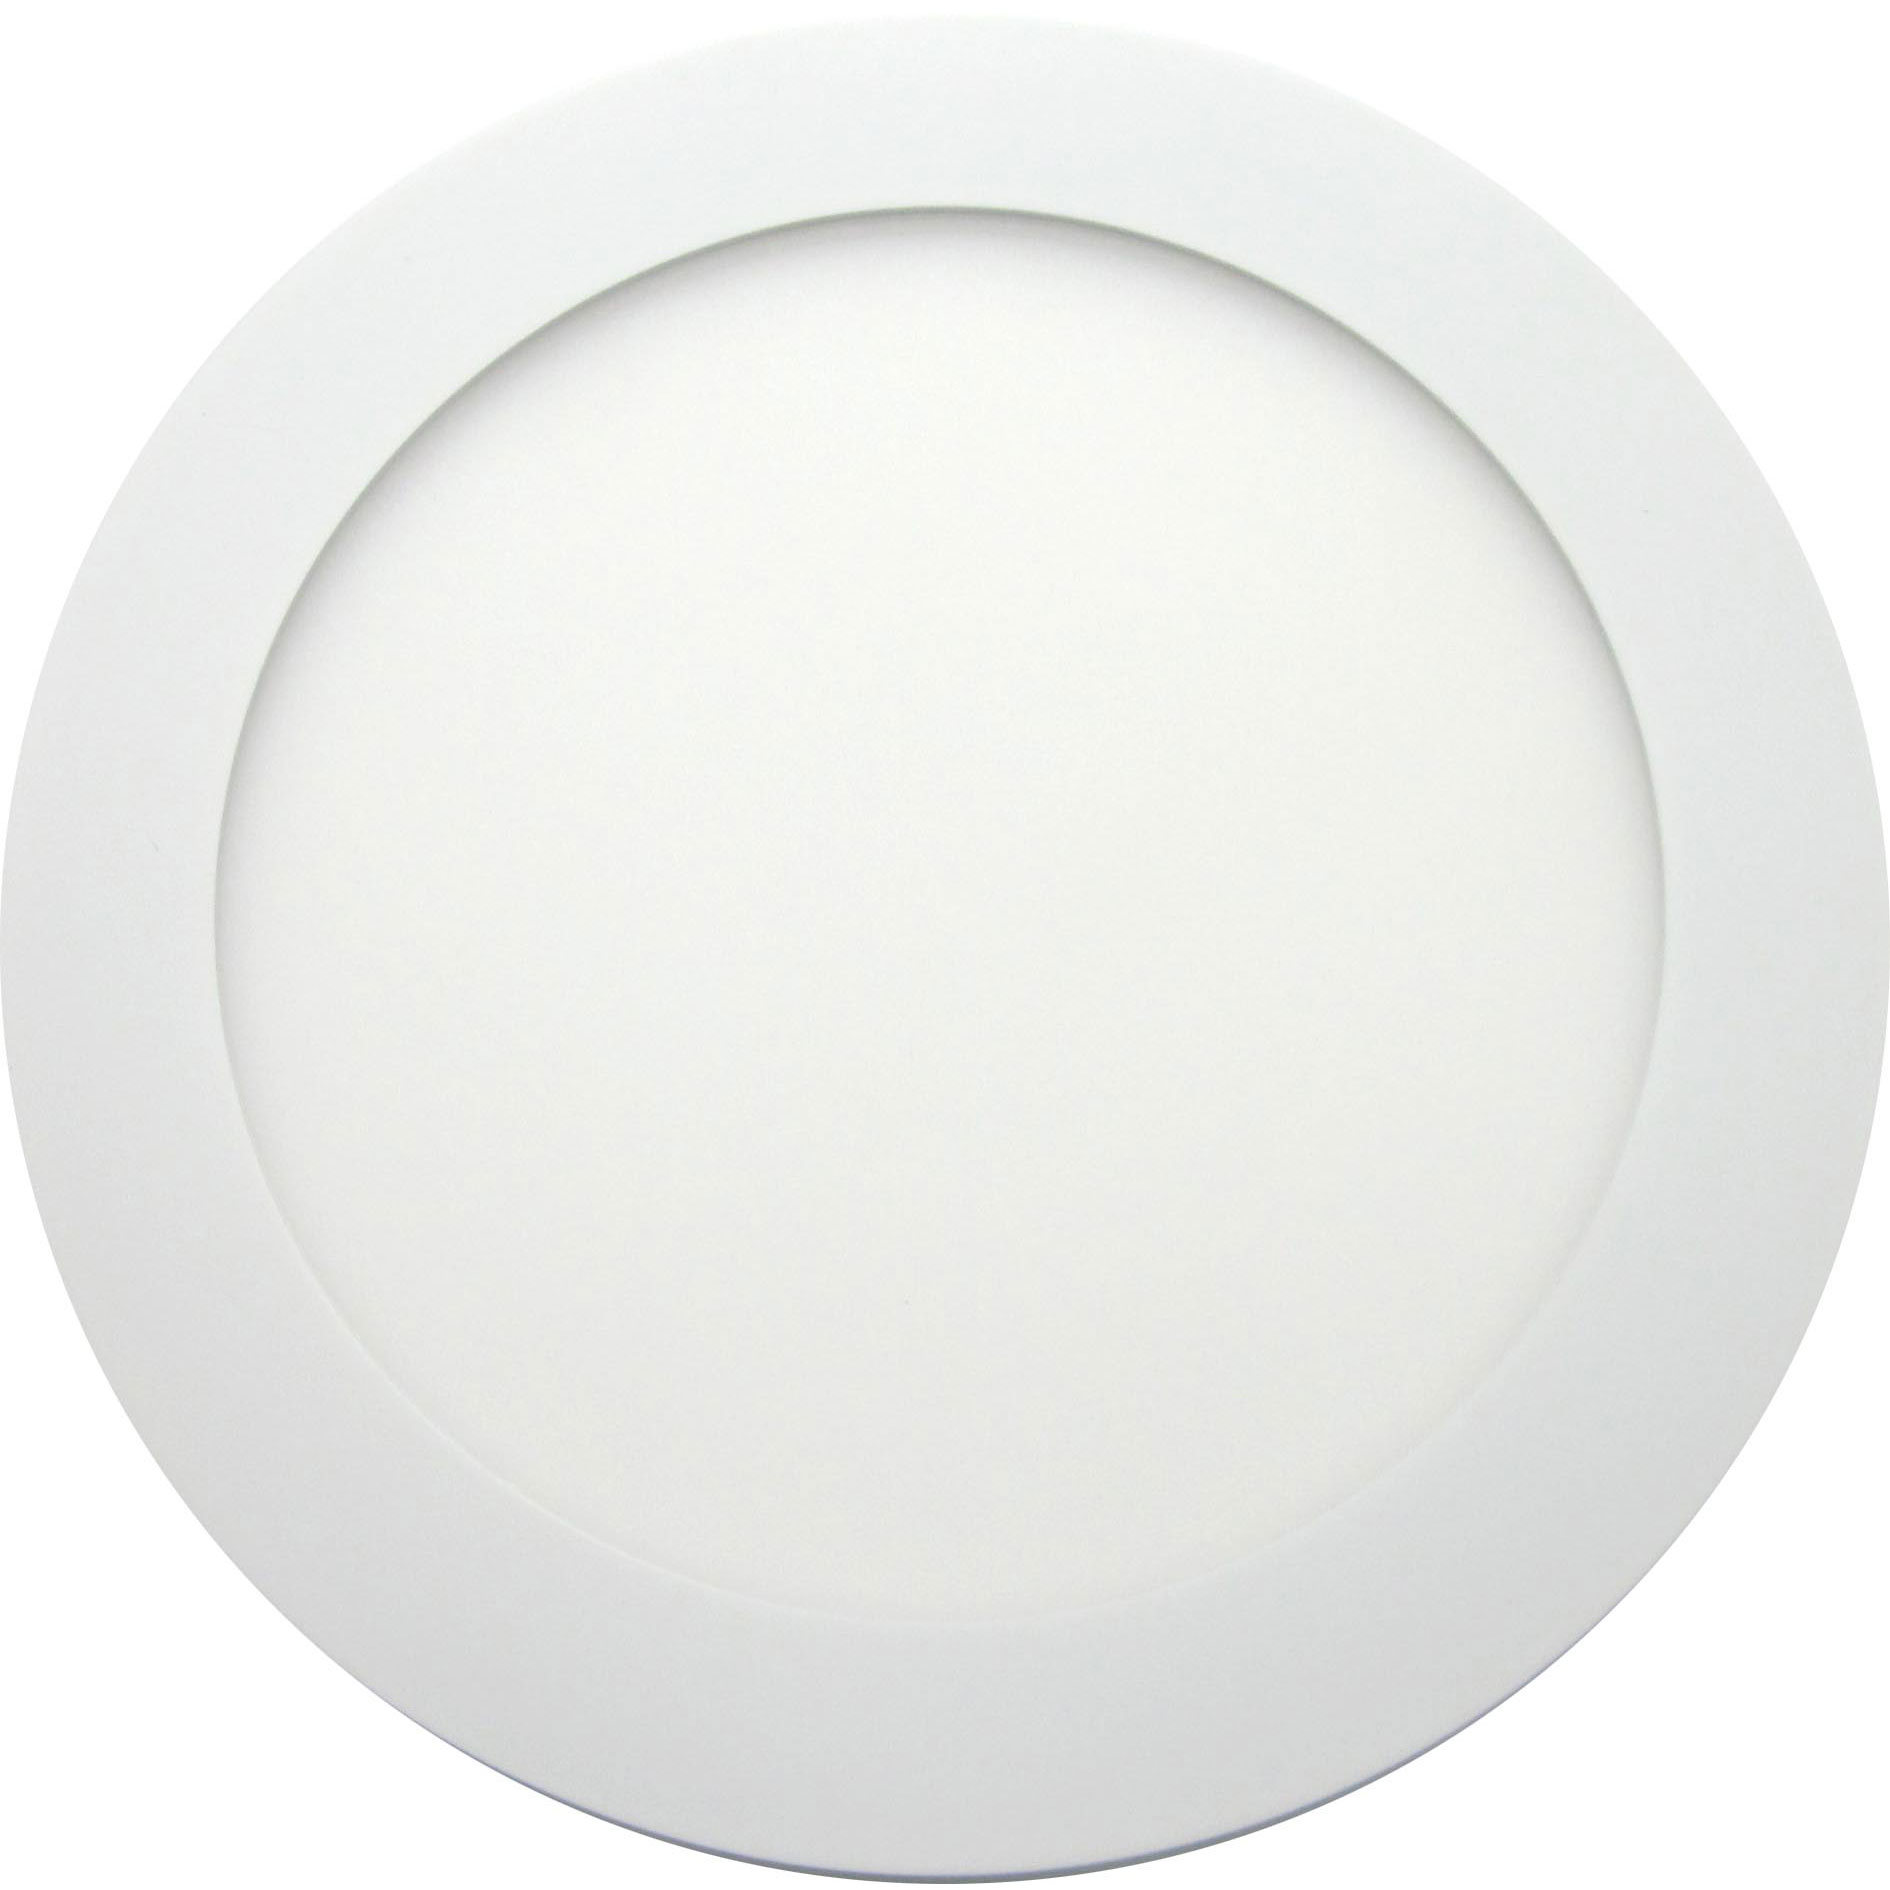 BL LED PANEL 200MM 15W 840 ROUND ND EM3 50K NON DIMMABLE ARIAL EMERGENCY